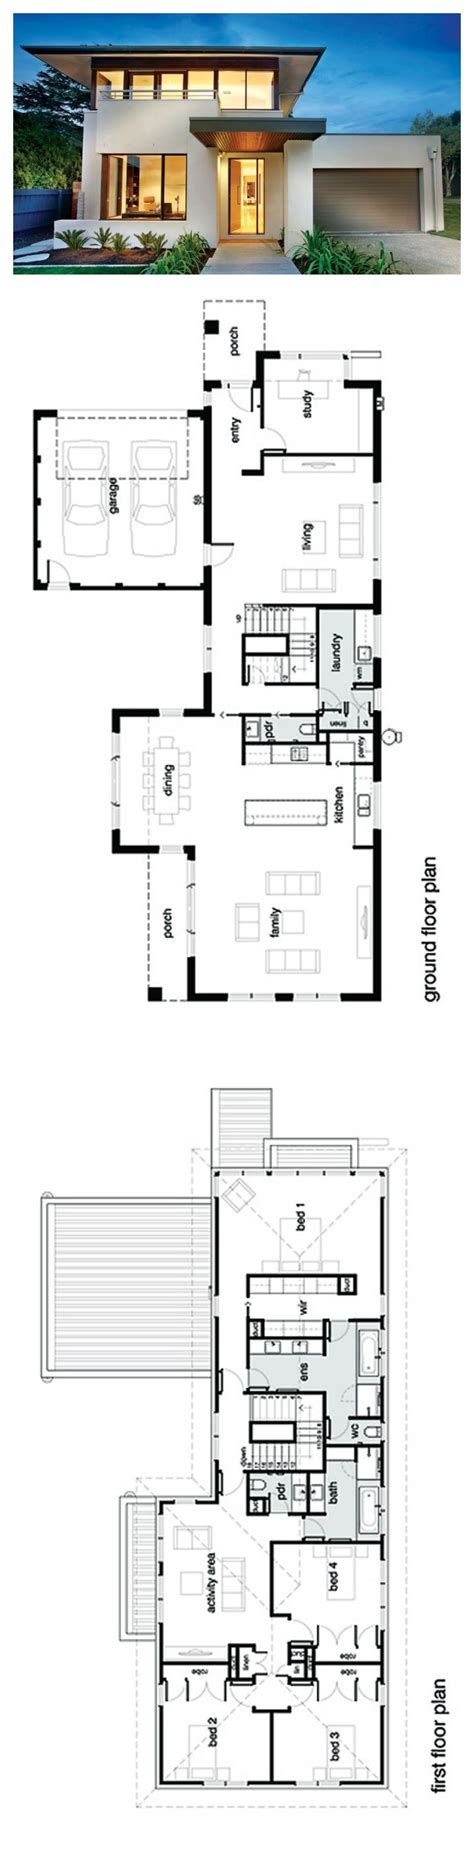 modern design floor plans the 25 best ideas about modern house plans on pinterest